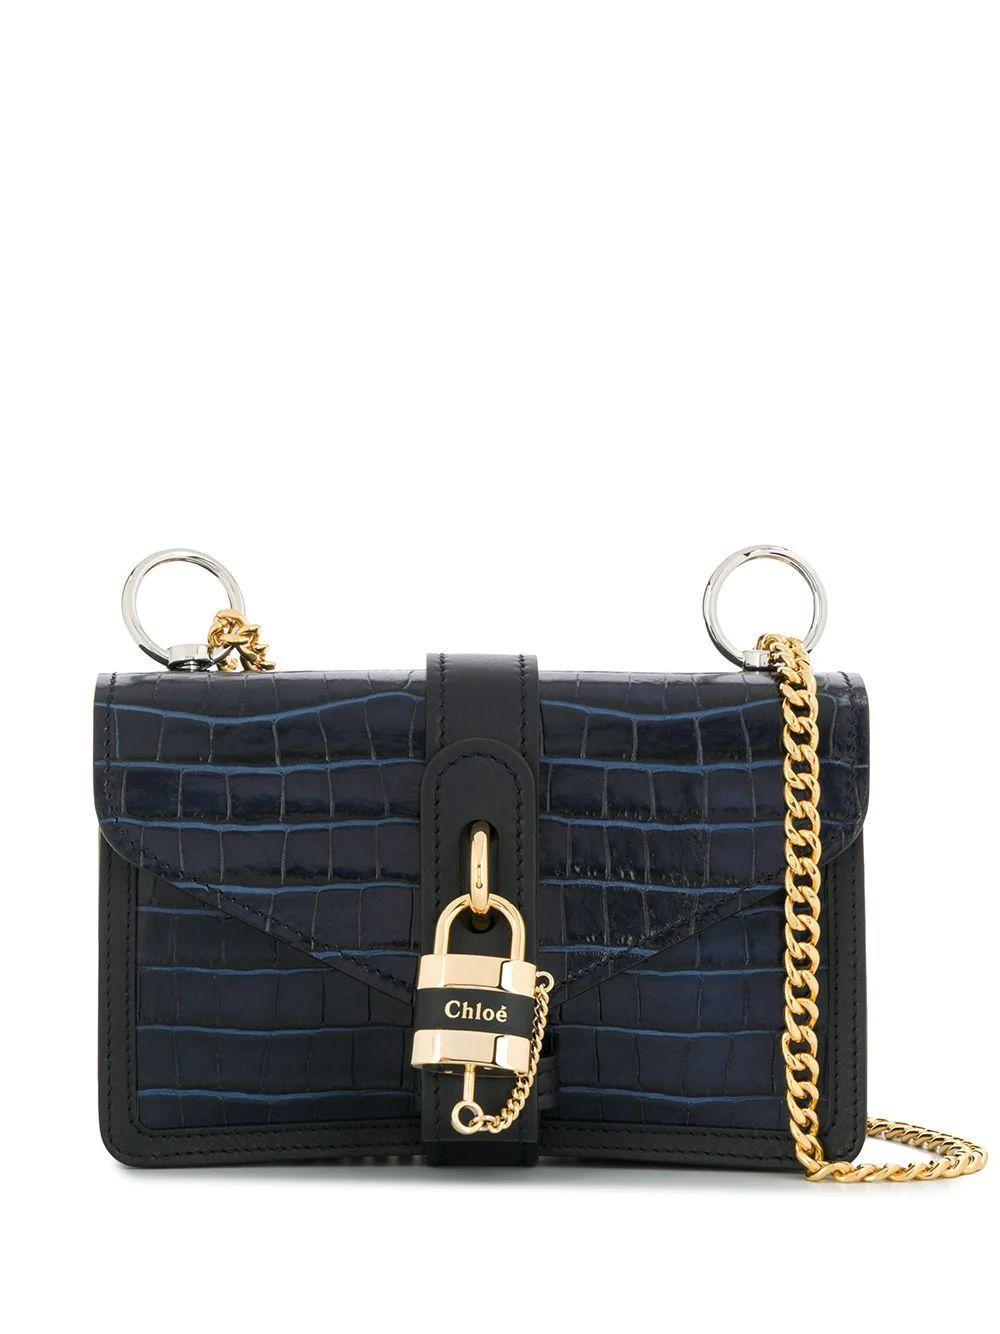 Aby Crocodile Embossed Bag With Lock Chain Strap Item # CHC19WS206A874D4